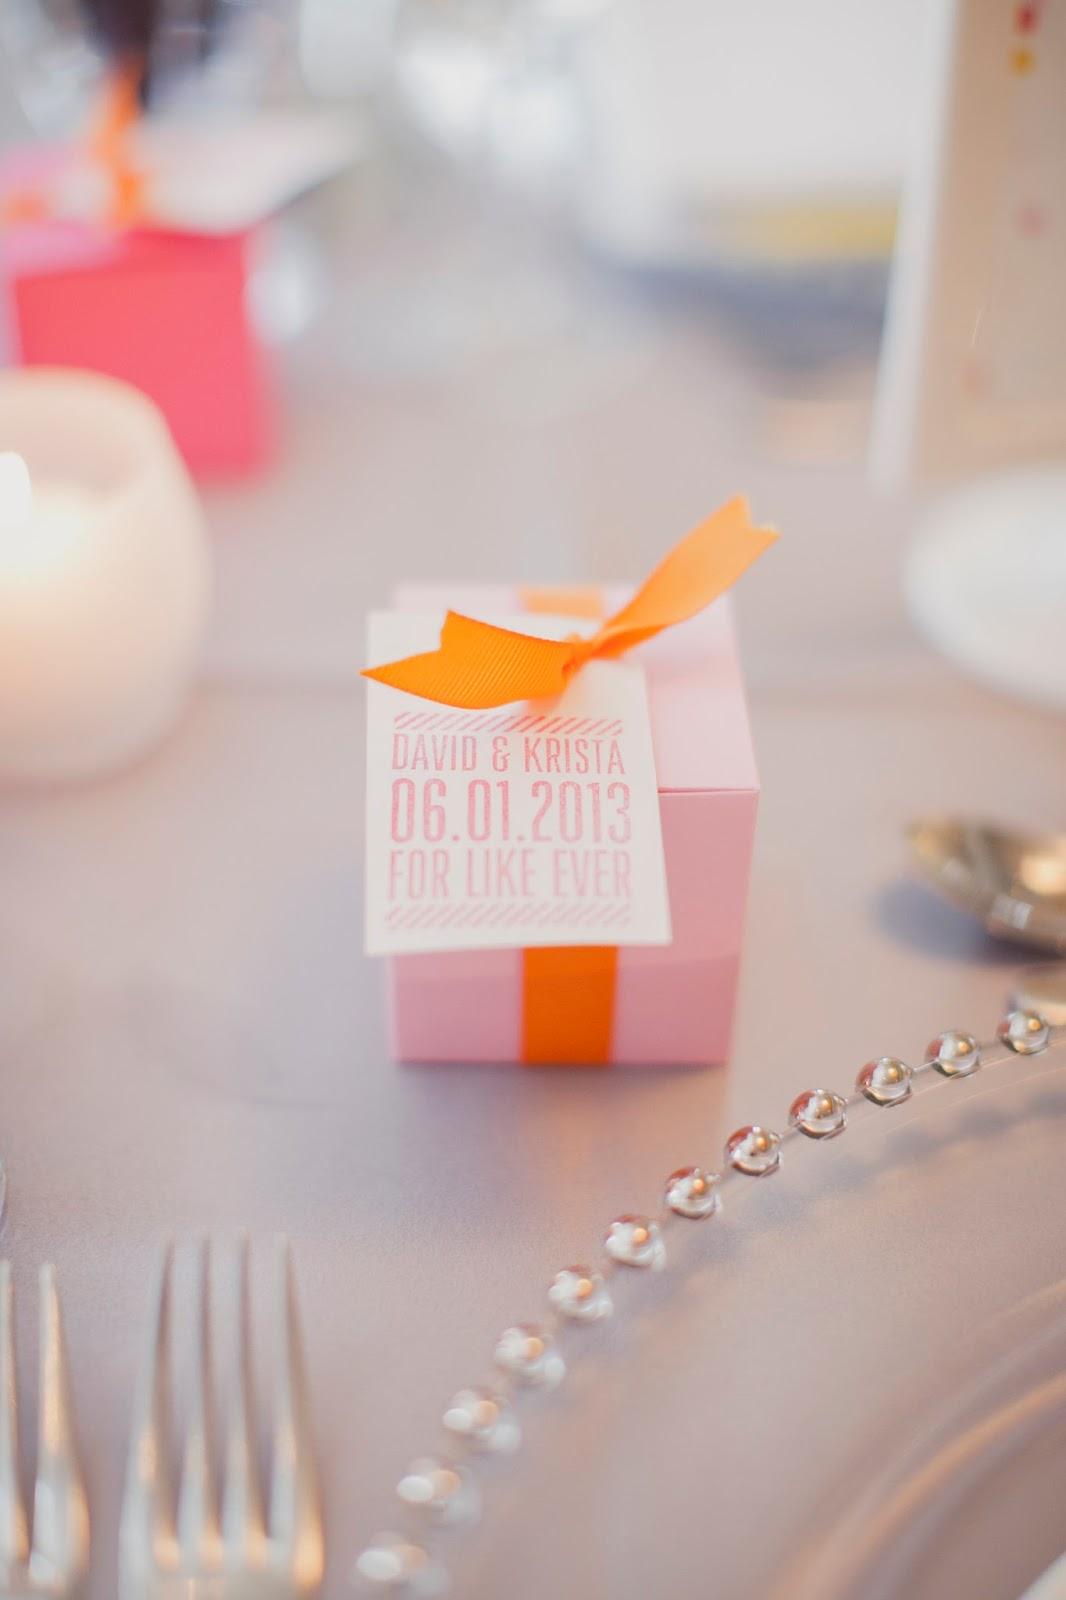 DIY wedding favours, DIY wedding favors